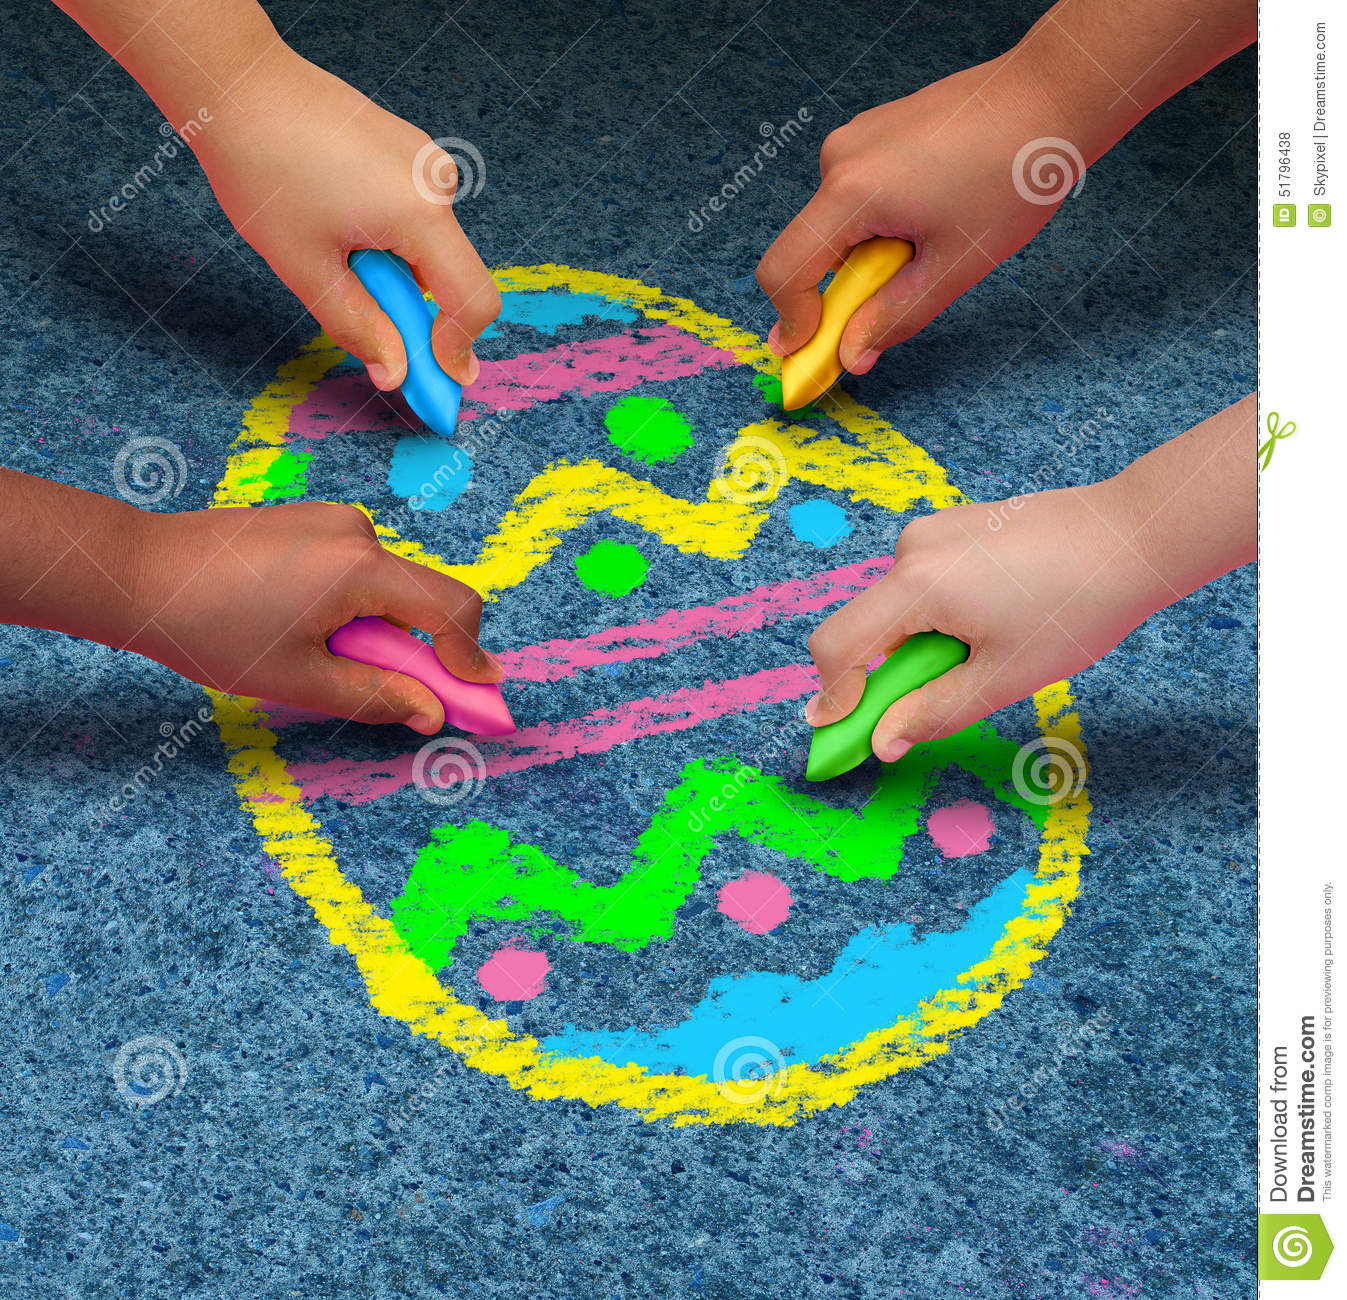 Easter arts and crafts stock illustration image of for Children arts and craft